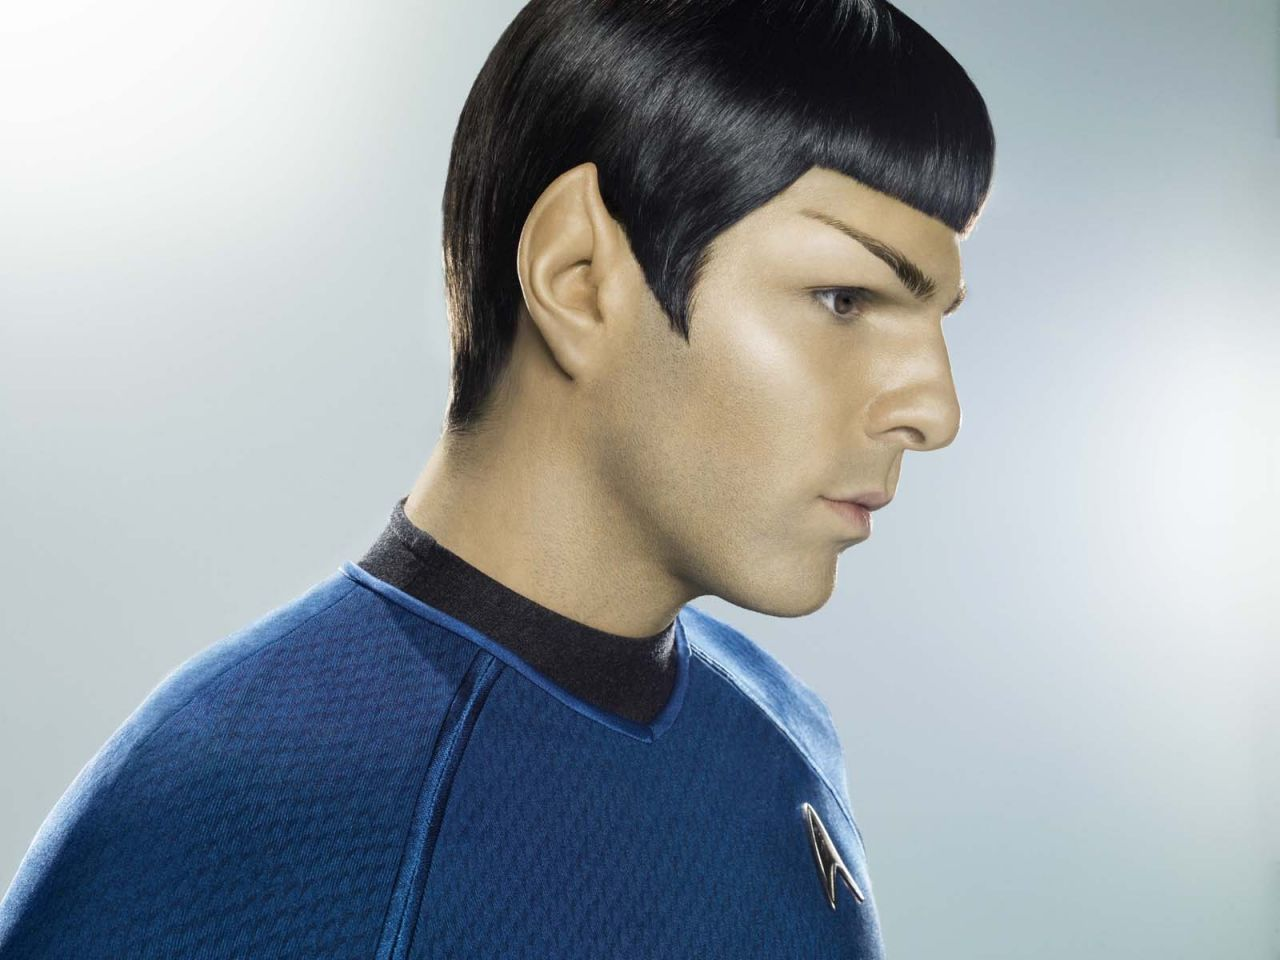 Zachary Quinto As Spock Side Portrait Wallpaper 1280x960